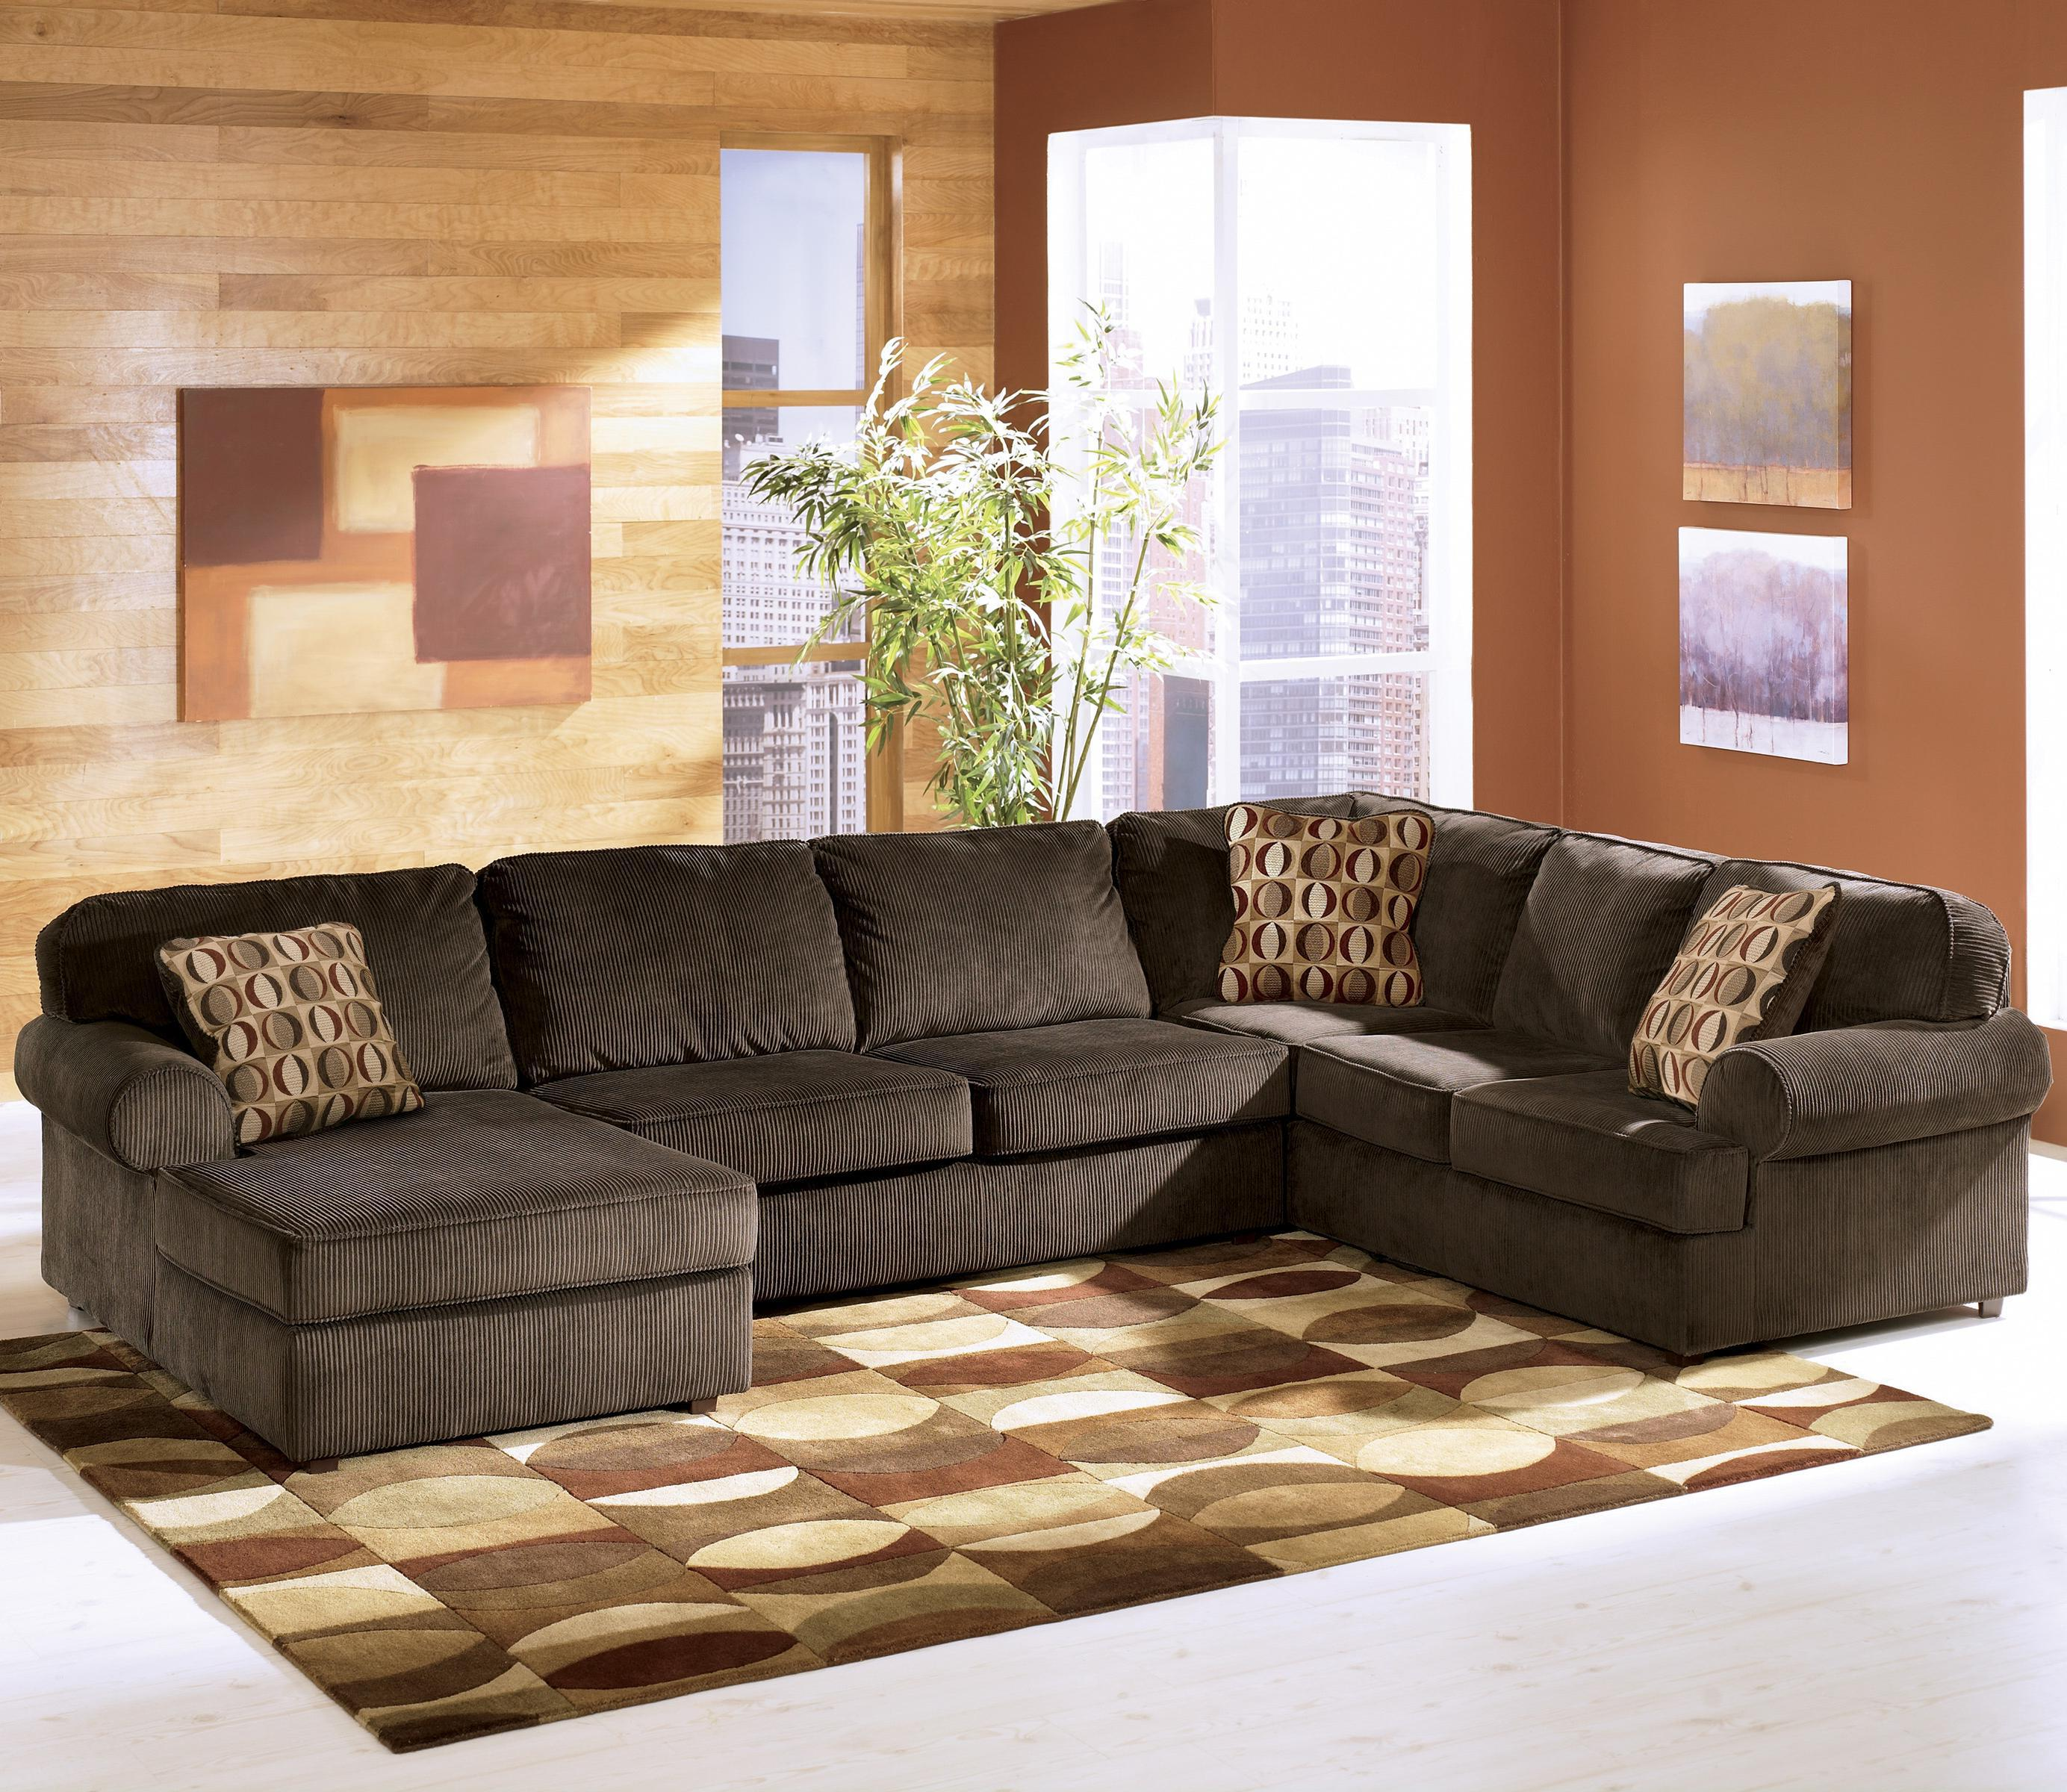 Ashley Furniture Layaway | Ashley Furniture El Paso | Ashley Furniture Louisville